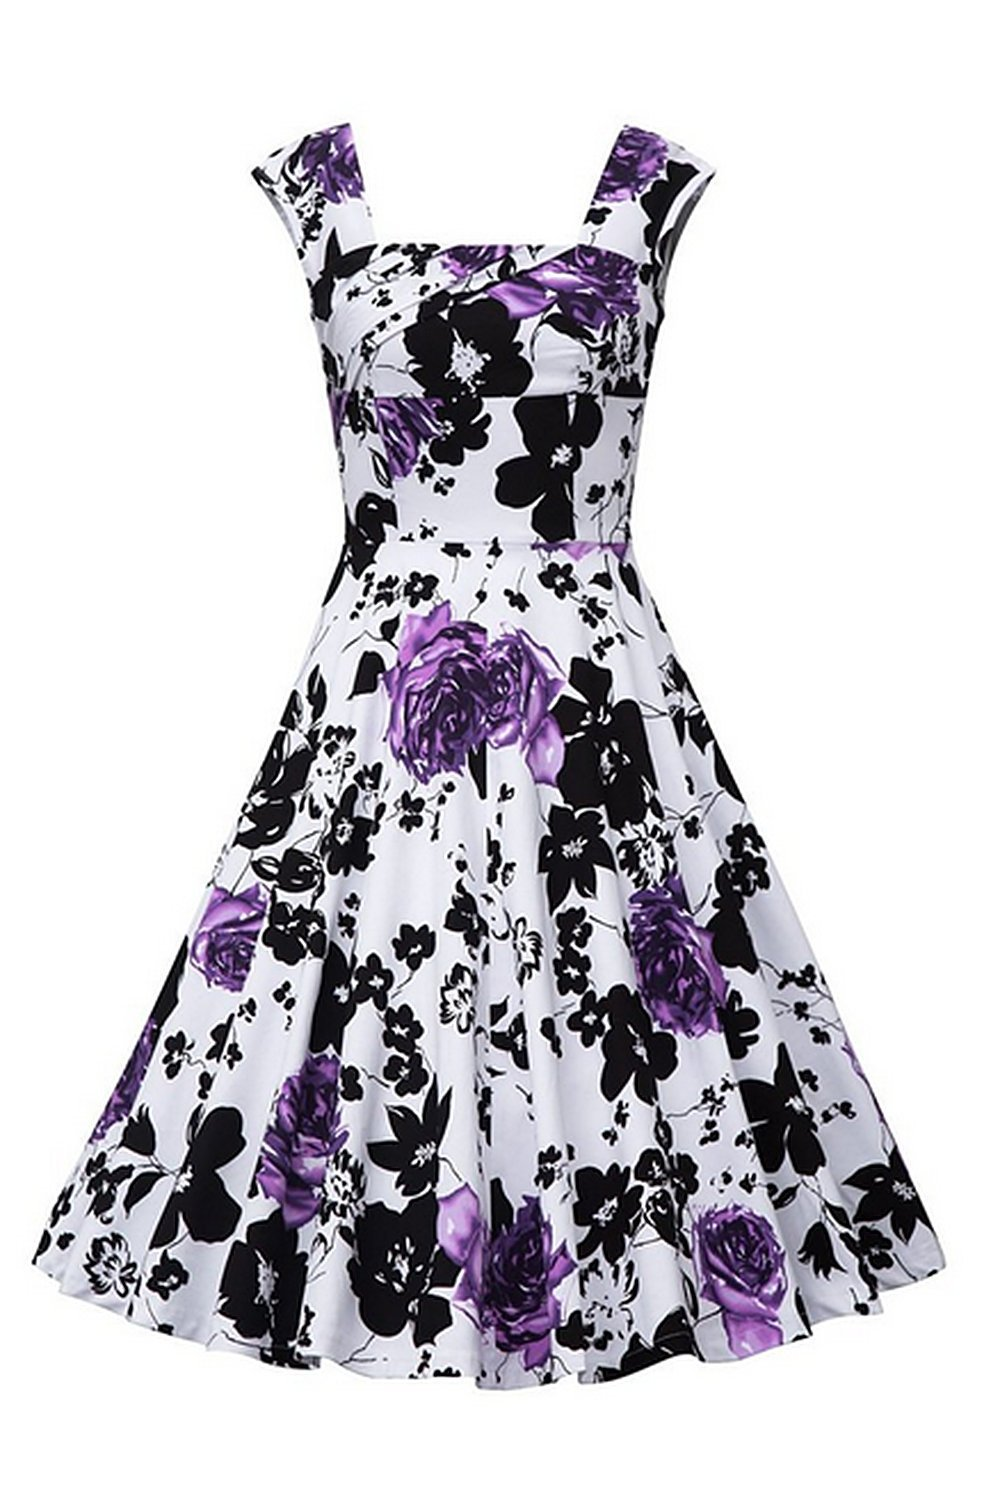 Available at Amazon: MisShow Women's Vintage Sleeveless 1950s Floral Casual Cocktail Dress